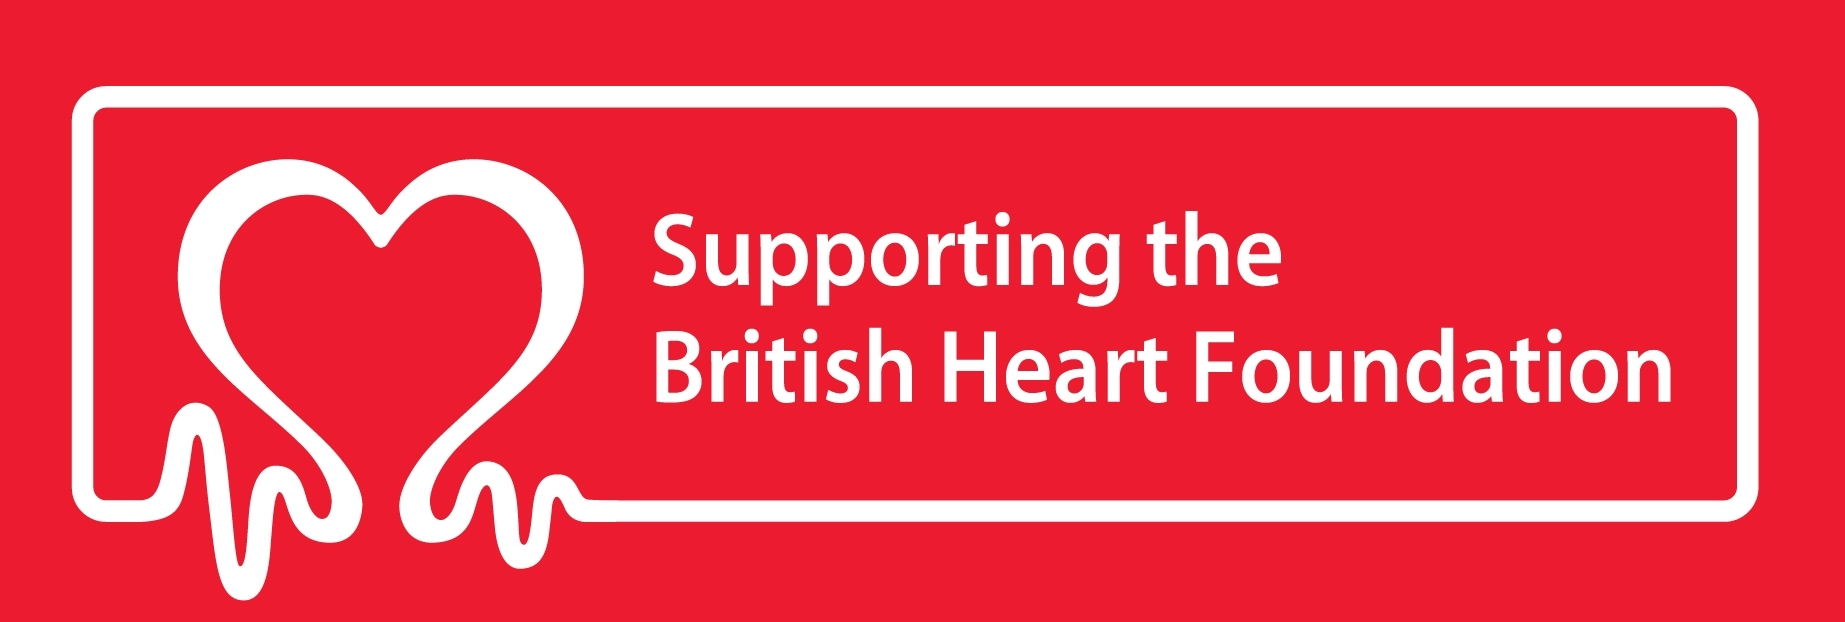 supporting-british-heart-foundation